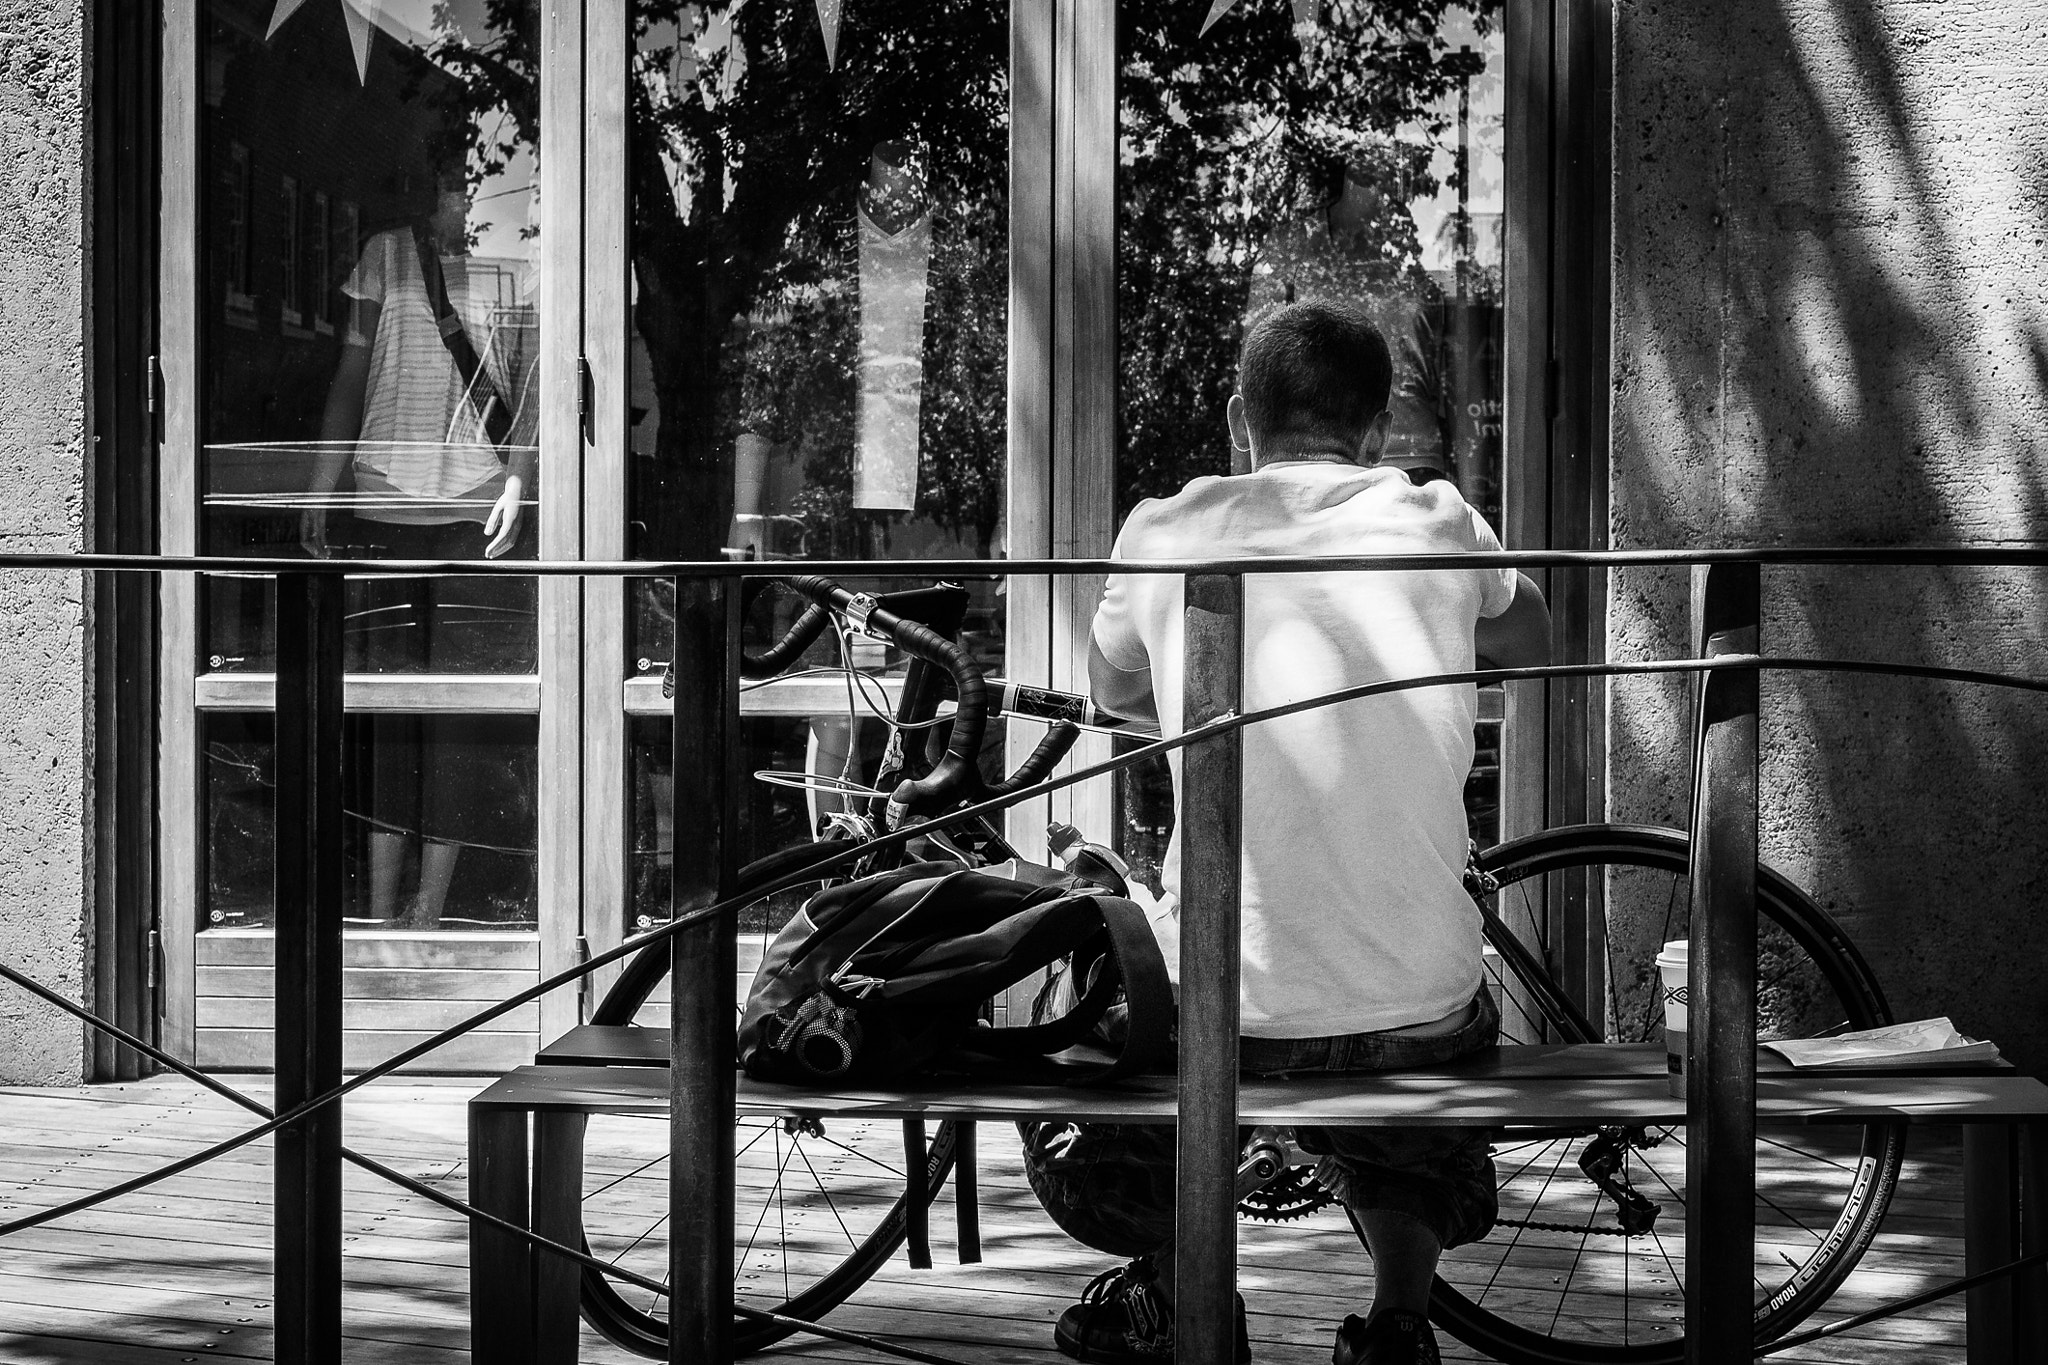 Photograph Window Shopping by Alan Le on 500px